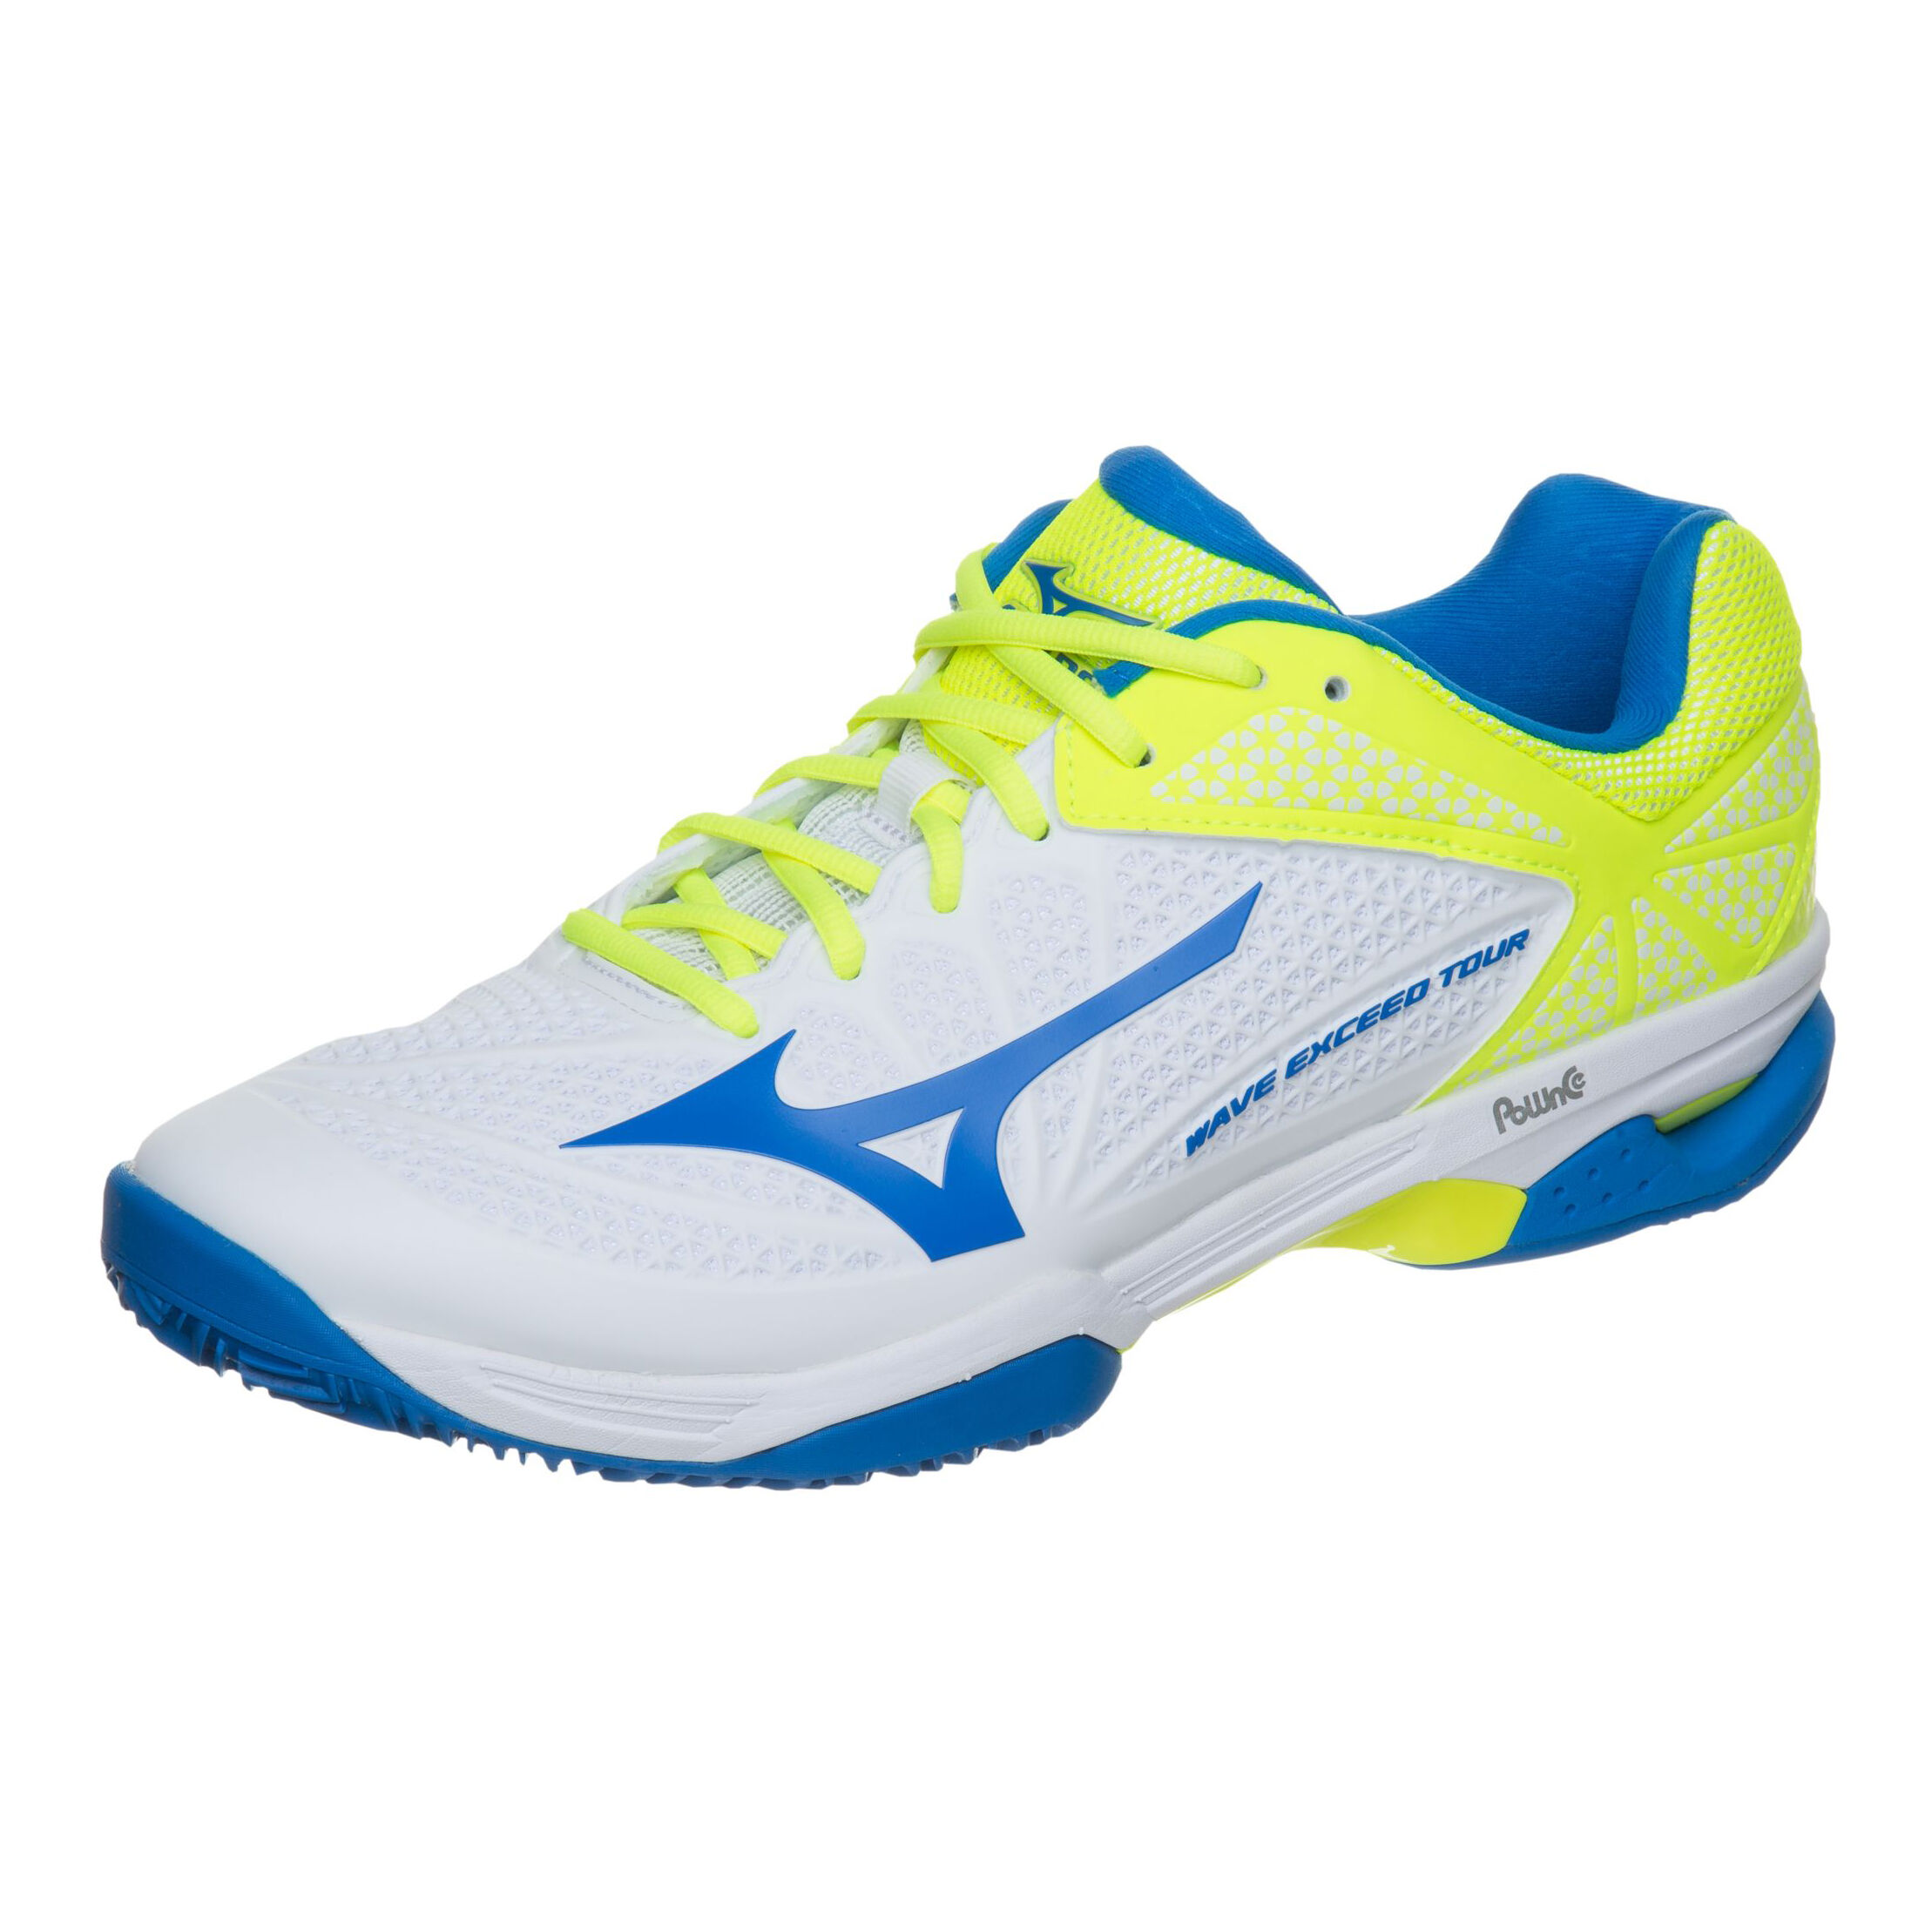 Mizuno Wave Exceed Tour 2 CC Chaussure Terre Battue Hommes